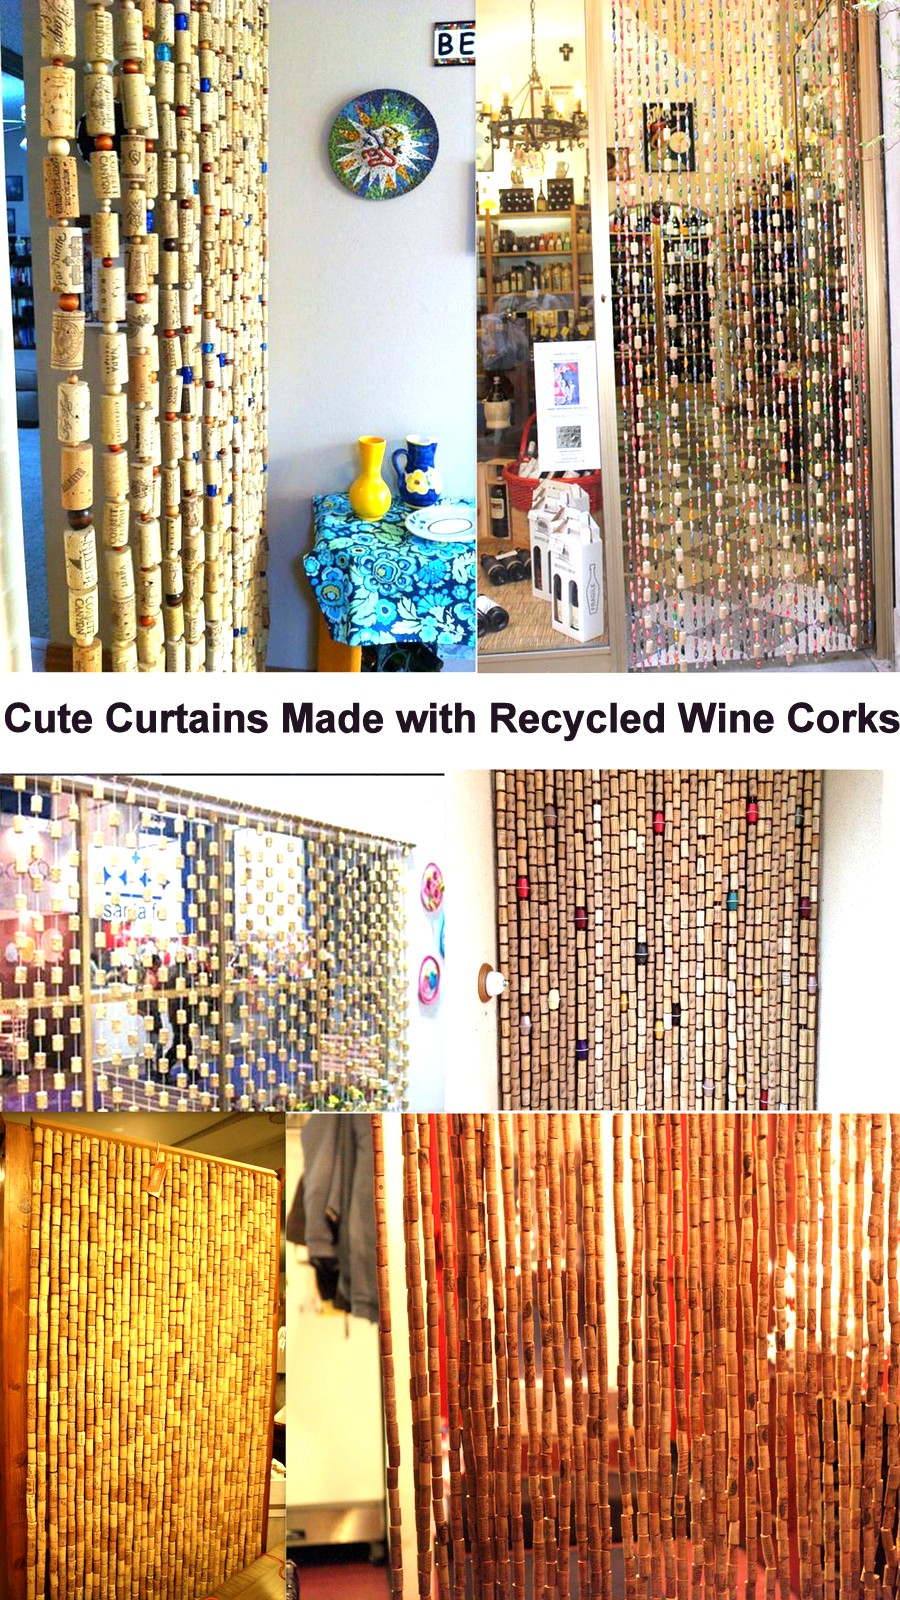 Cute Curtains Made with Recycled Wine Corks